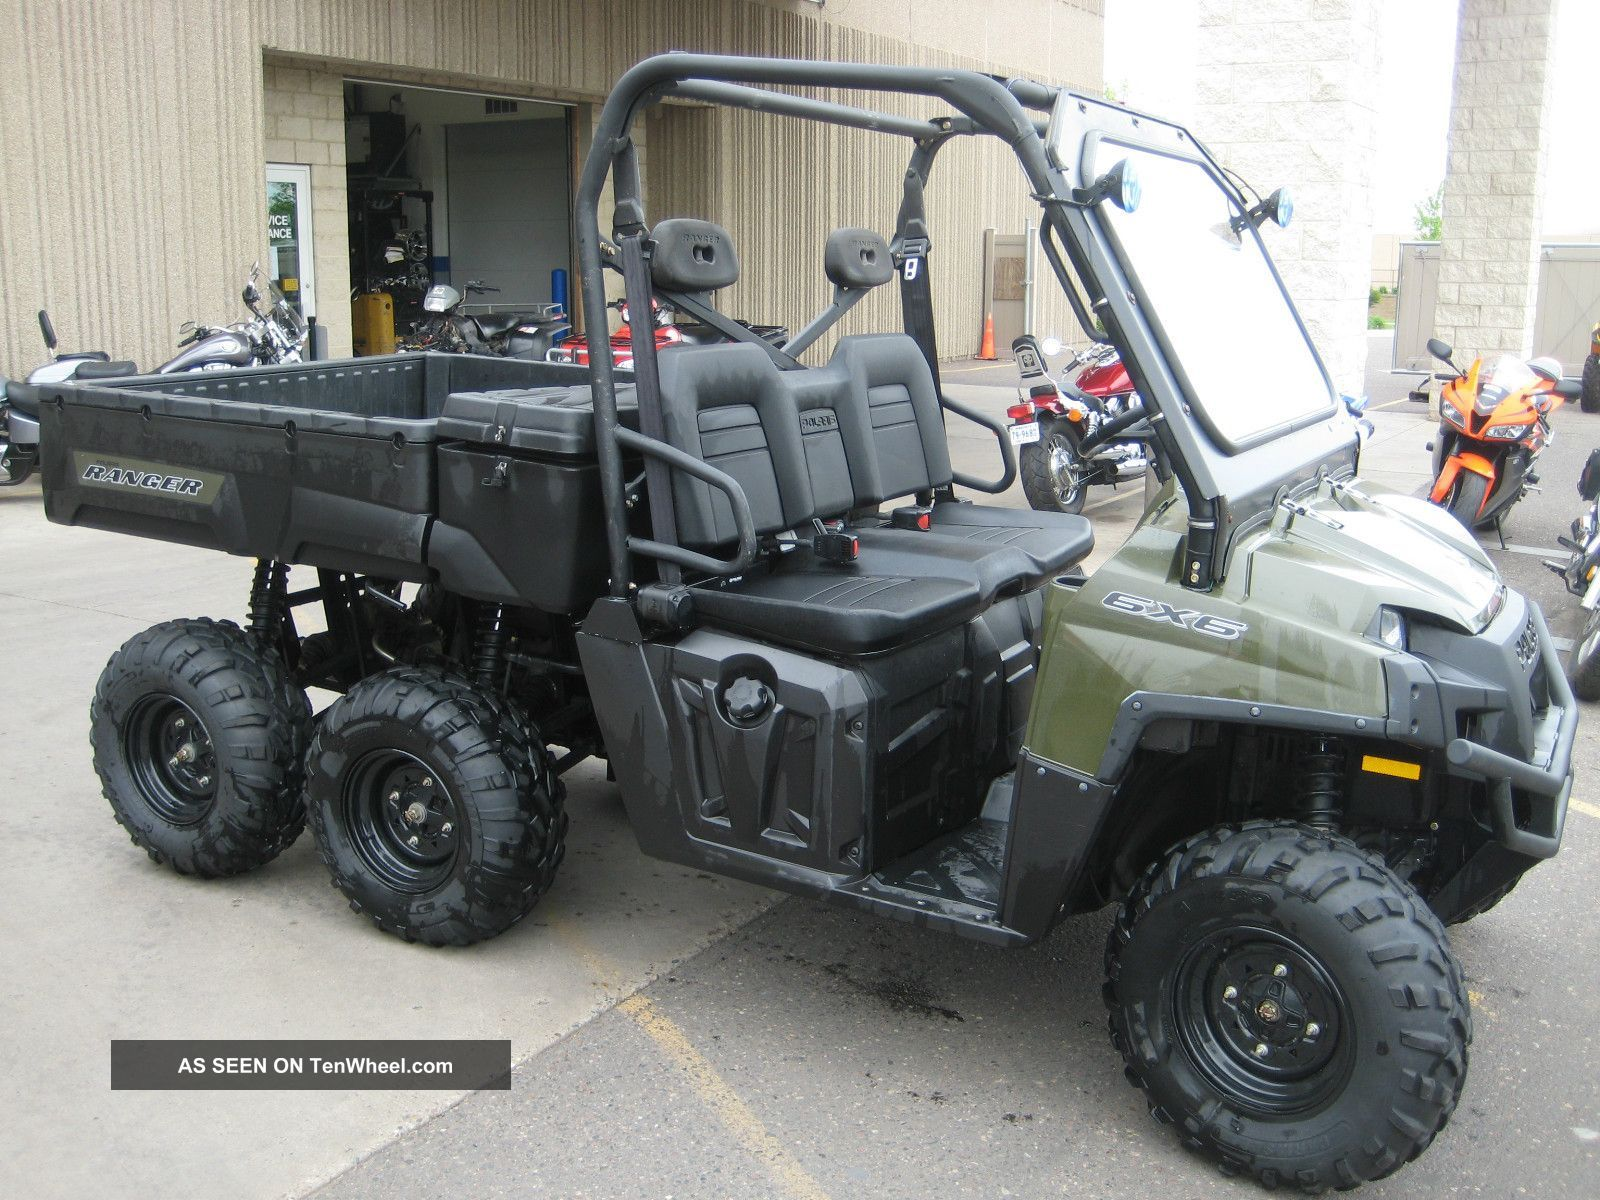 Pin by Jim Hopkins on Polaris Ranger 6X6 in 2020 | Polaris ranger ...